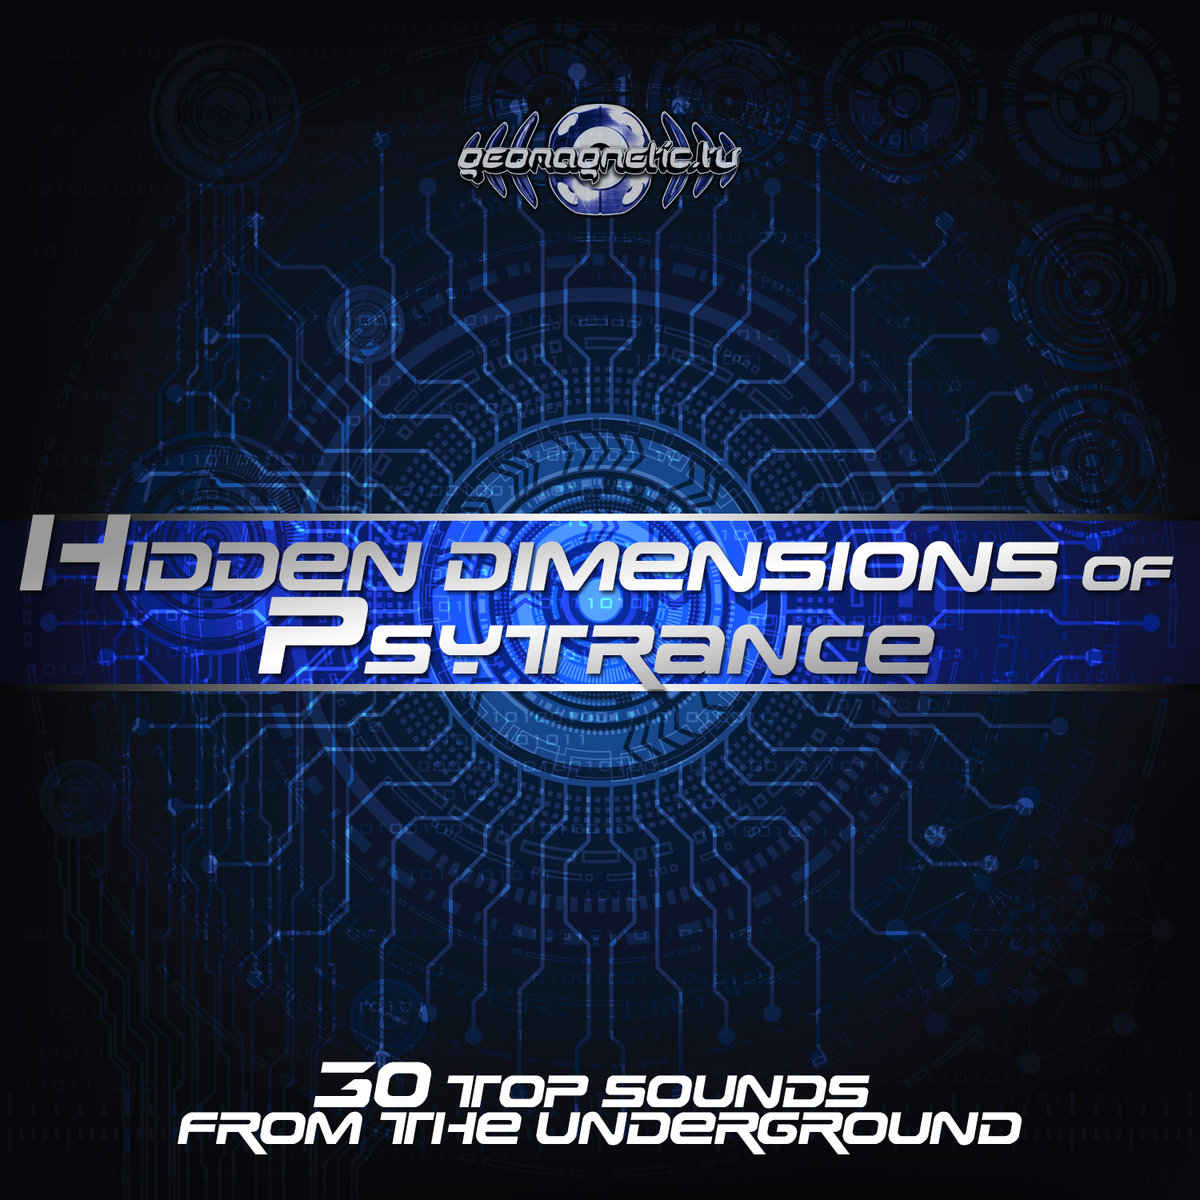 Theseus - Core Function @ 'Various Artists - Hidden Dimensions of Psytrance (30 Top Sounds From The Underground)' album (electronic, goa)